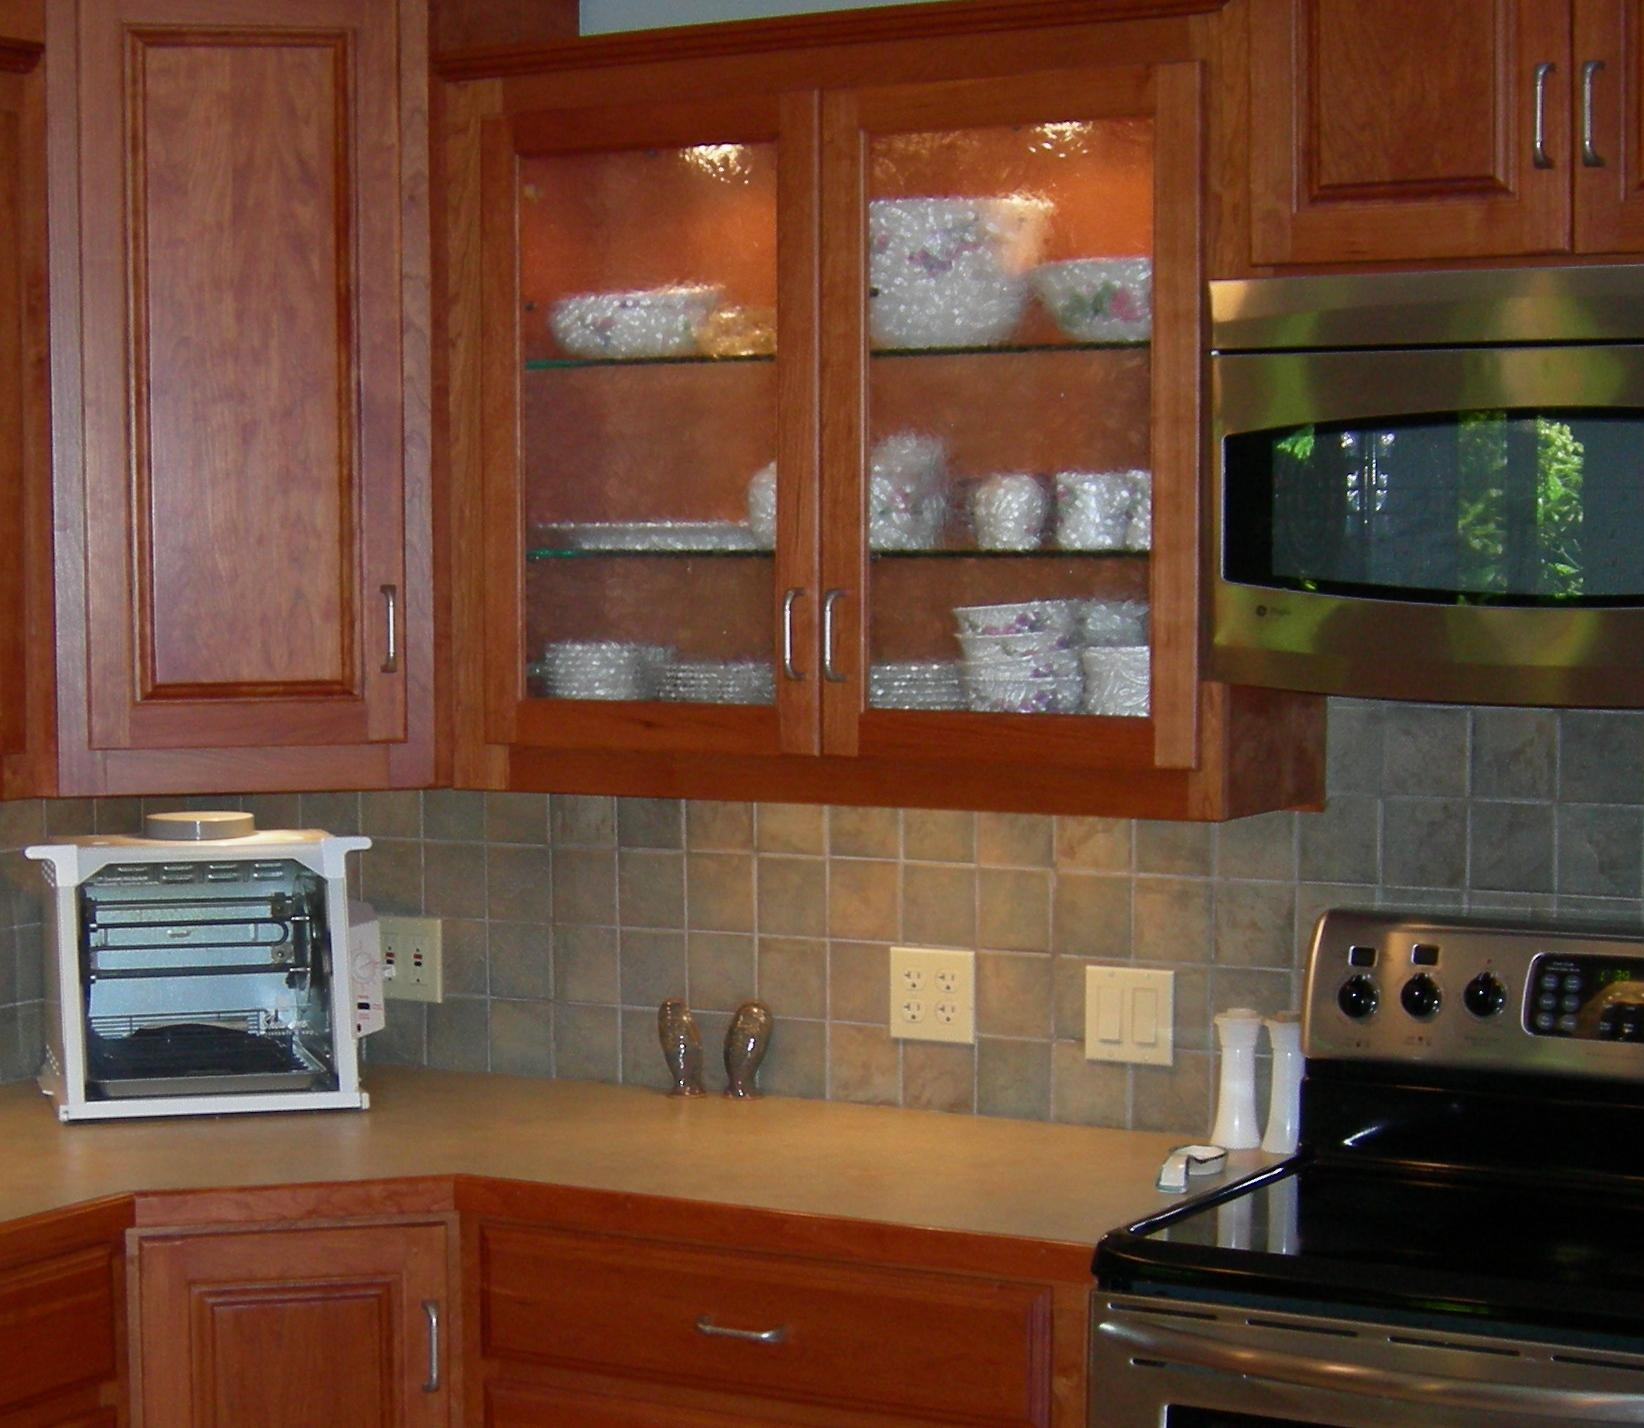 Glass Shelving For Kitchen Cabinets